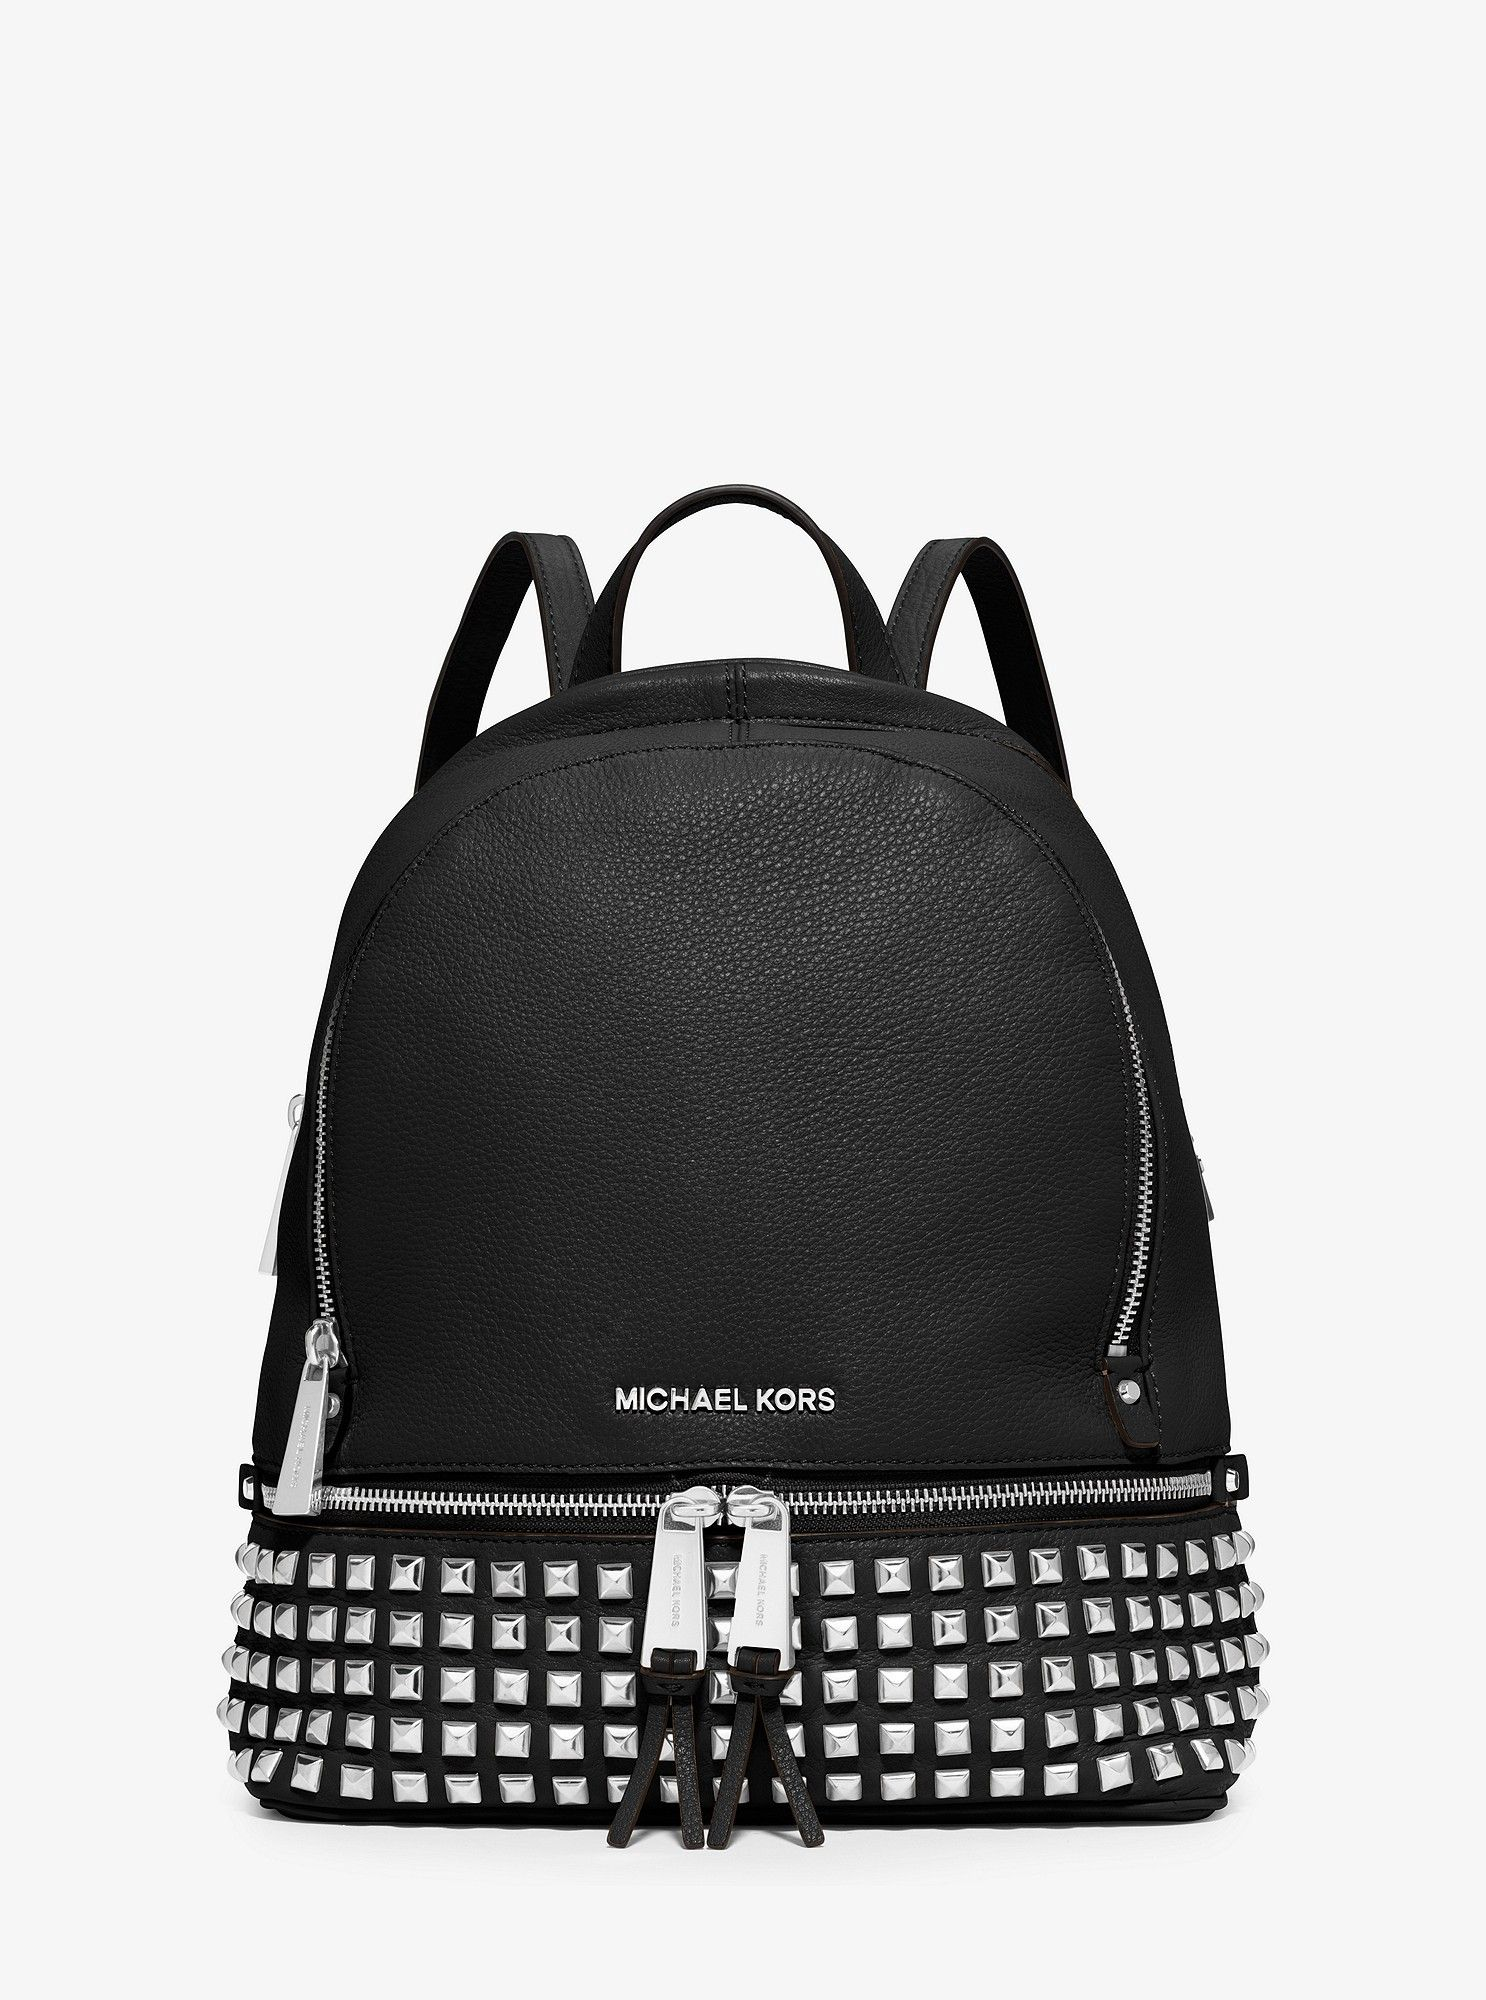 18e649dfef72 Michael Kors Rhea Small Studded Leather Backpack - Black | Products ...